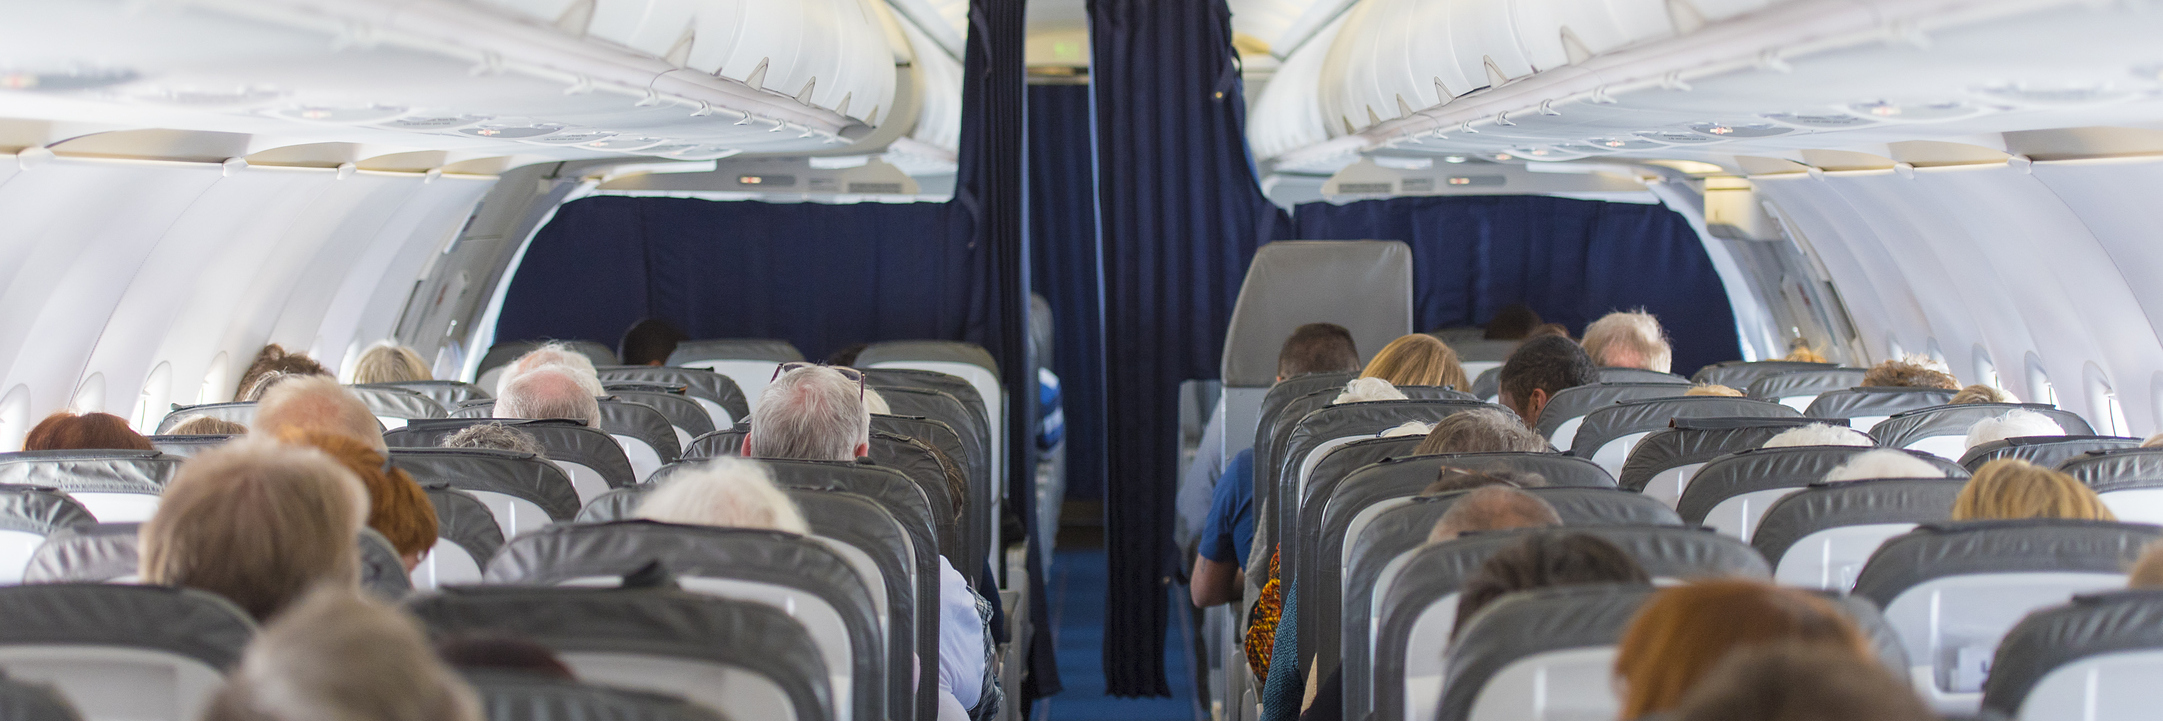 rows inside the cabin of an airplane